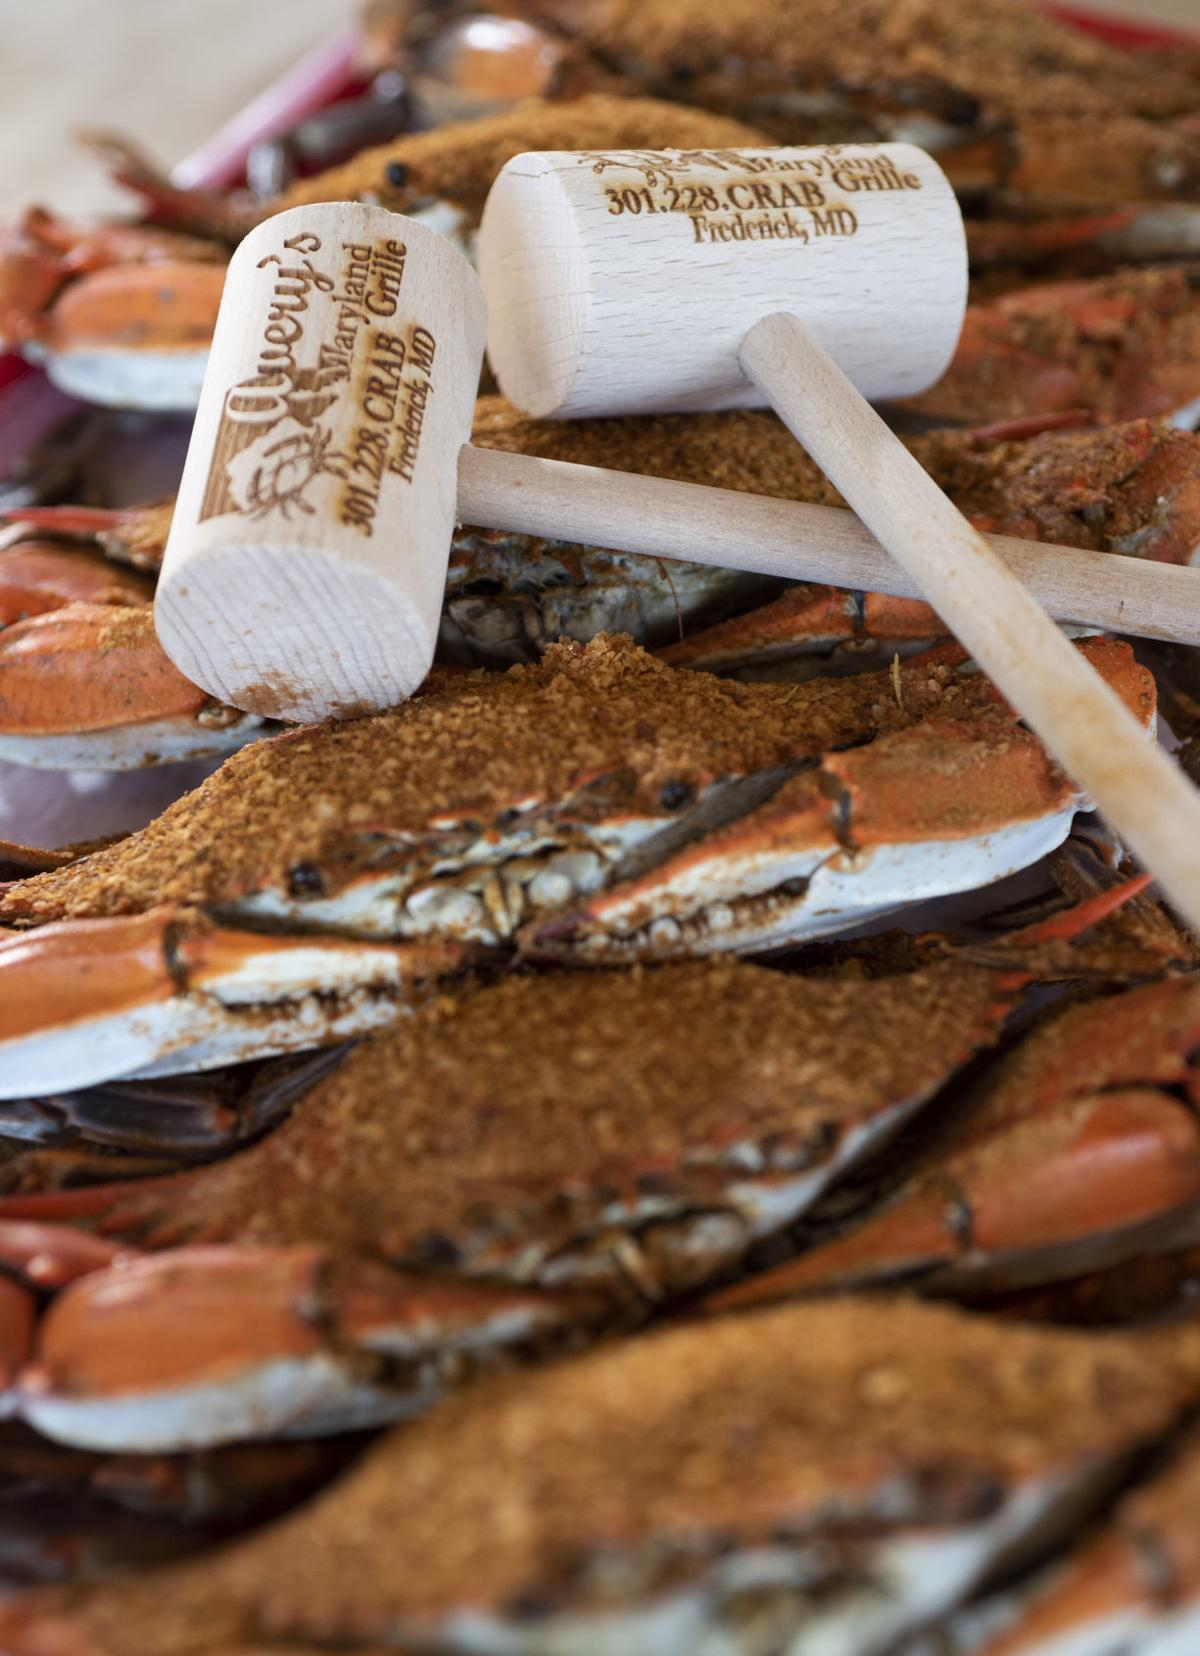 Tastebuds Order Crabs At Averys Maryland Grille A No Frills Spot For Seafood